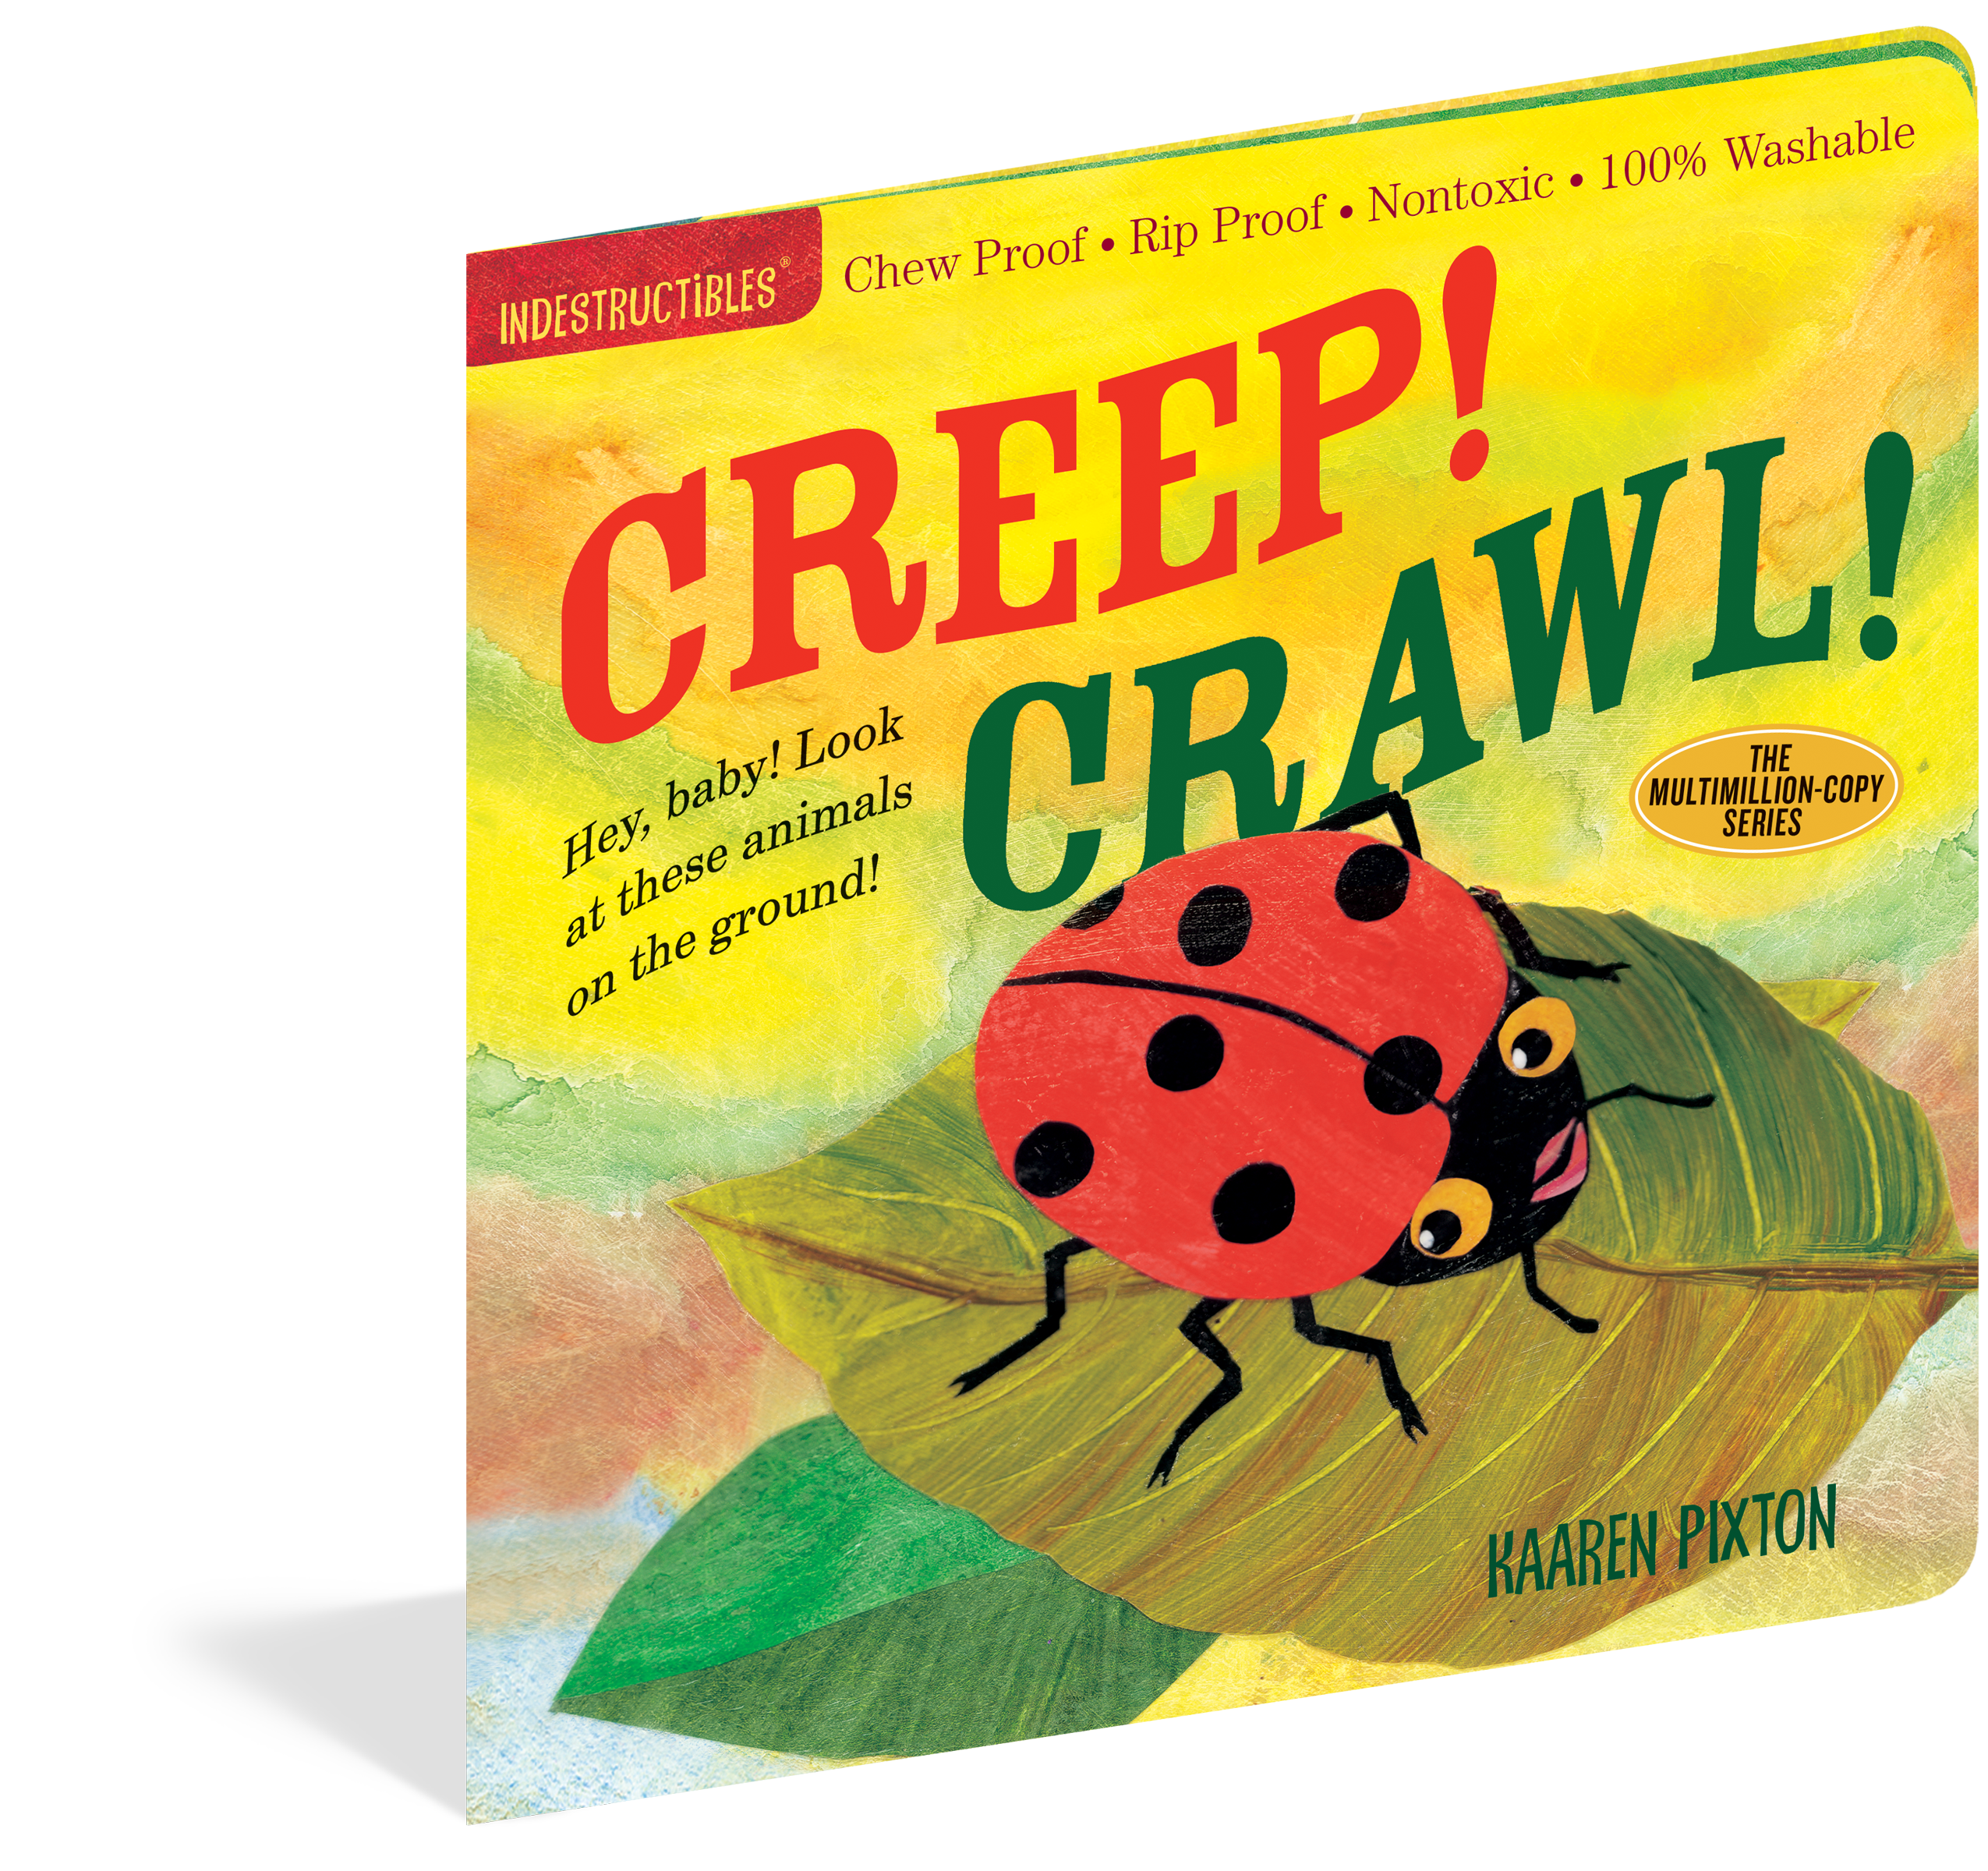 Creep! Crawl!